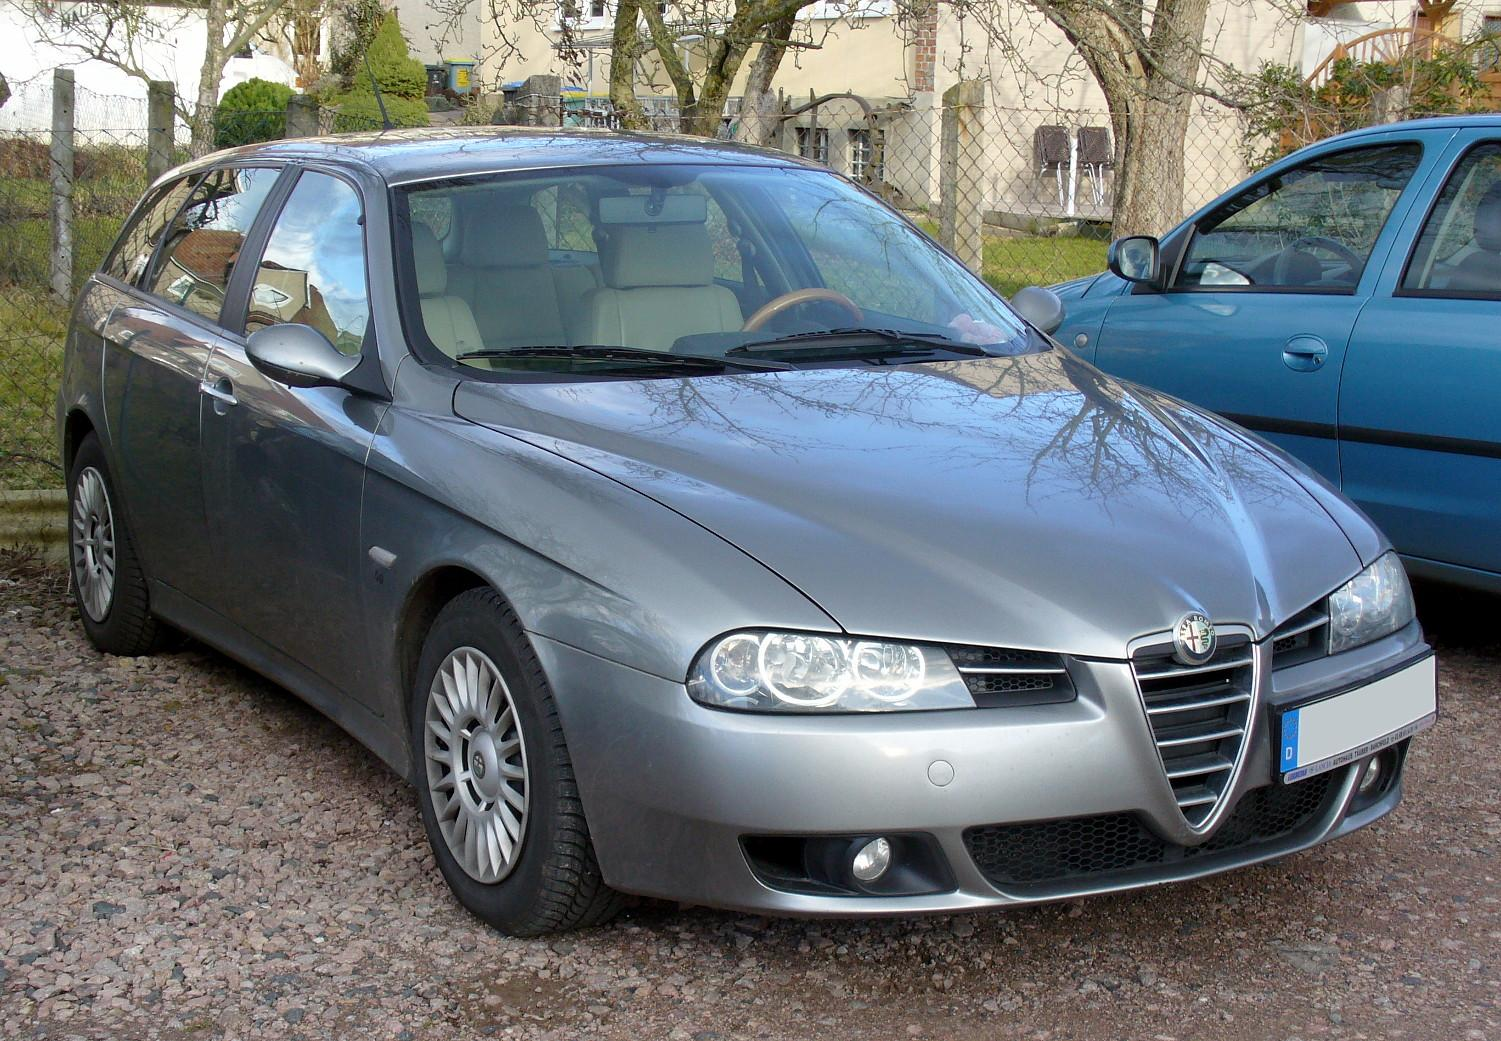 file alfa romeo 156 sportwagon facelift jpg wikimedia commons. Black Bedroom Furniture Sets. Home Design Ideas